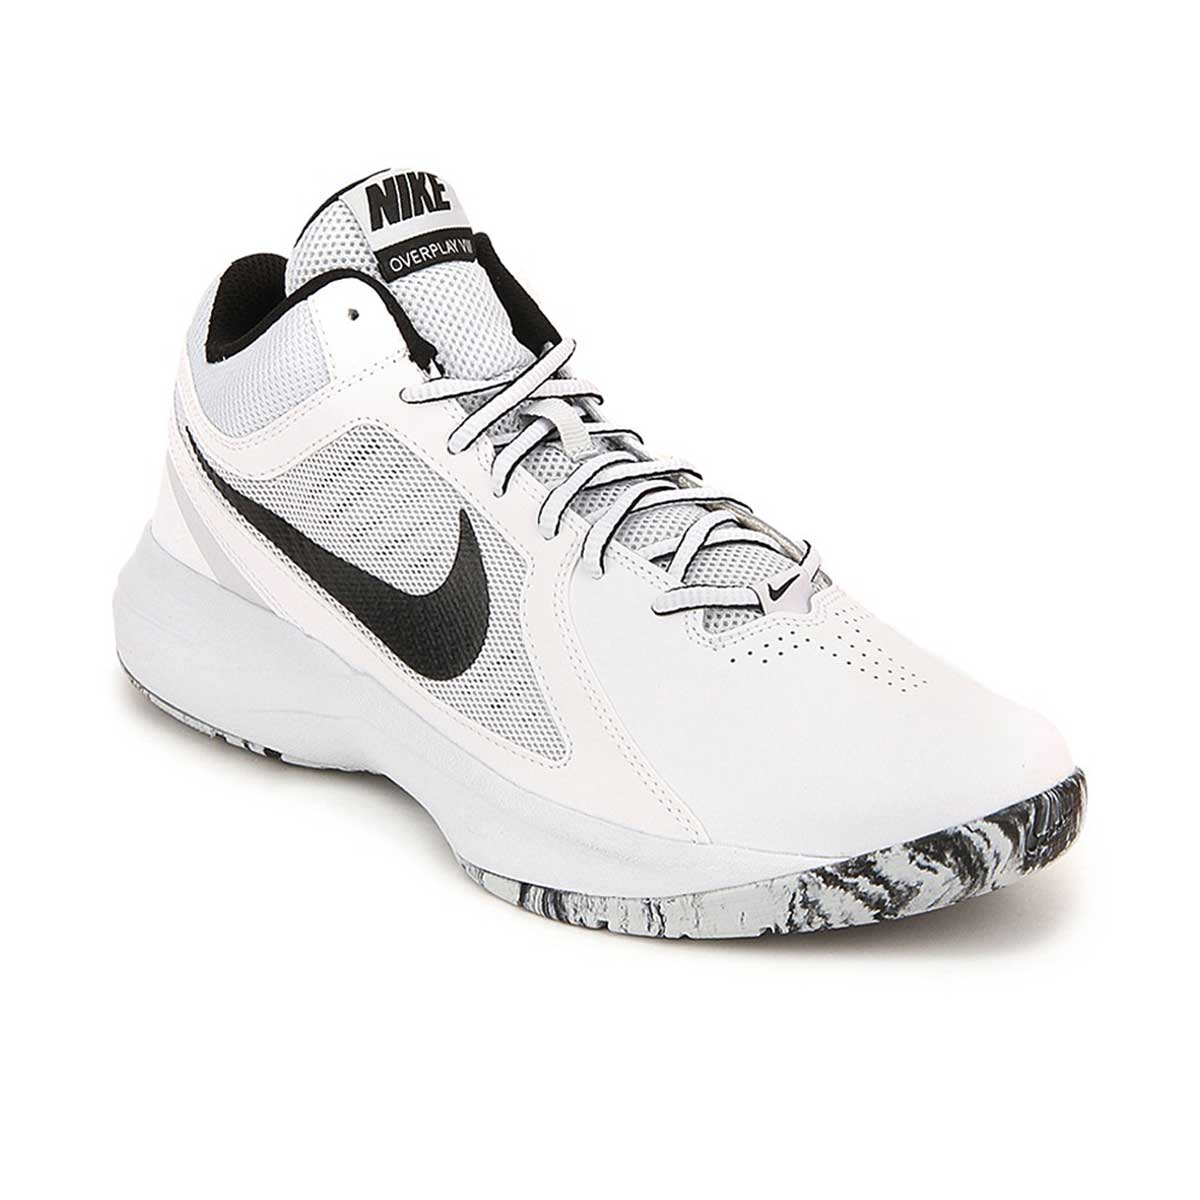 Basketball Shoes, Basketball, Sports, Buy, Nike, Nike Overplay VIII  Basketball Shoes